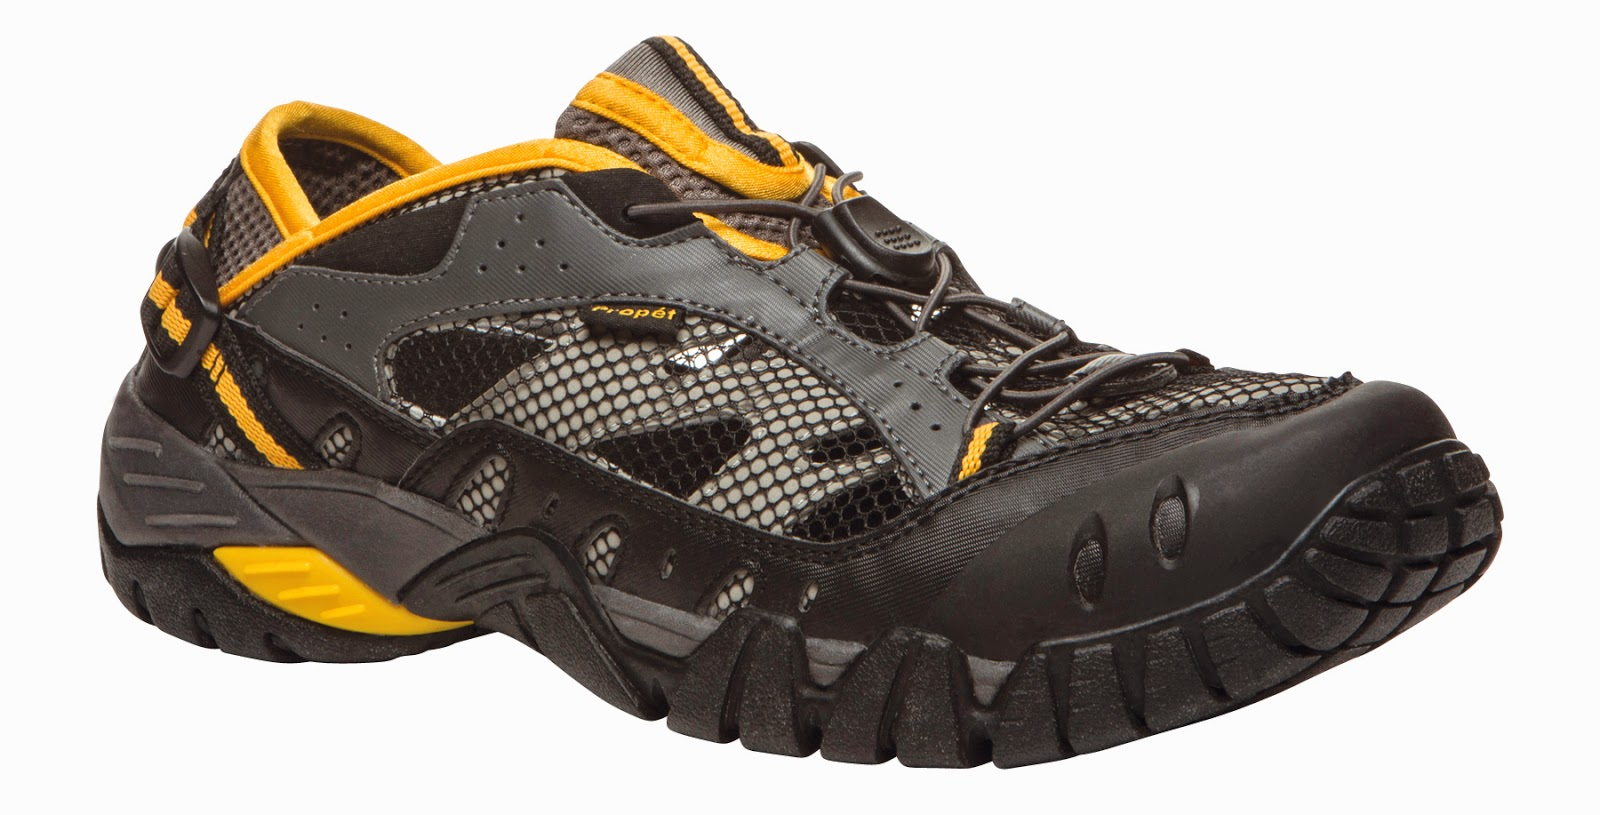 XLfeet Digest: Where to Find Big Mens Large Water shoes to EEEEE ...